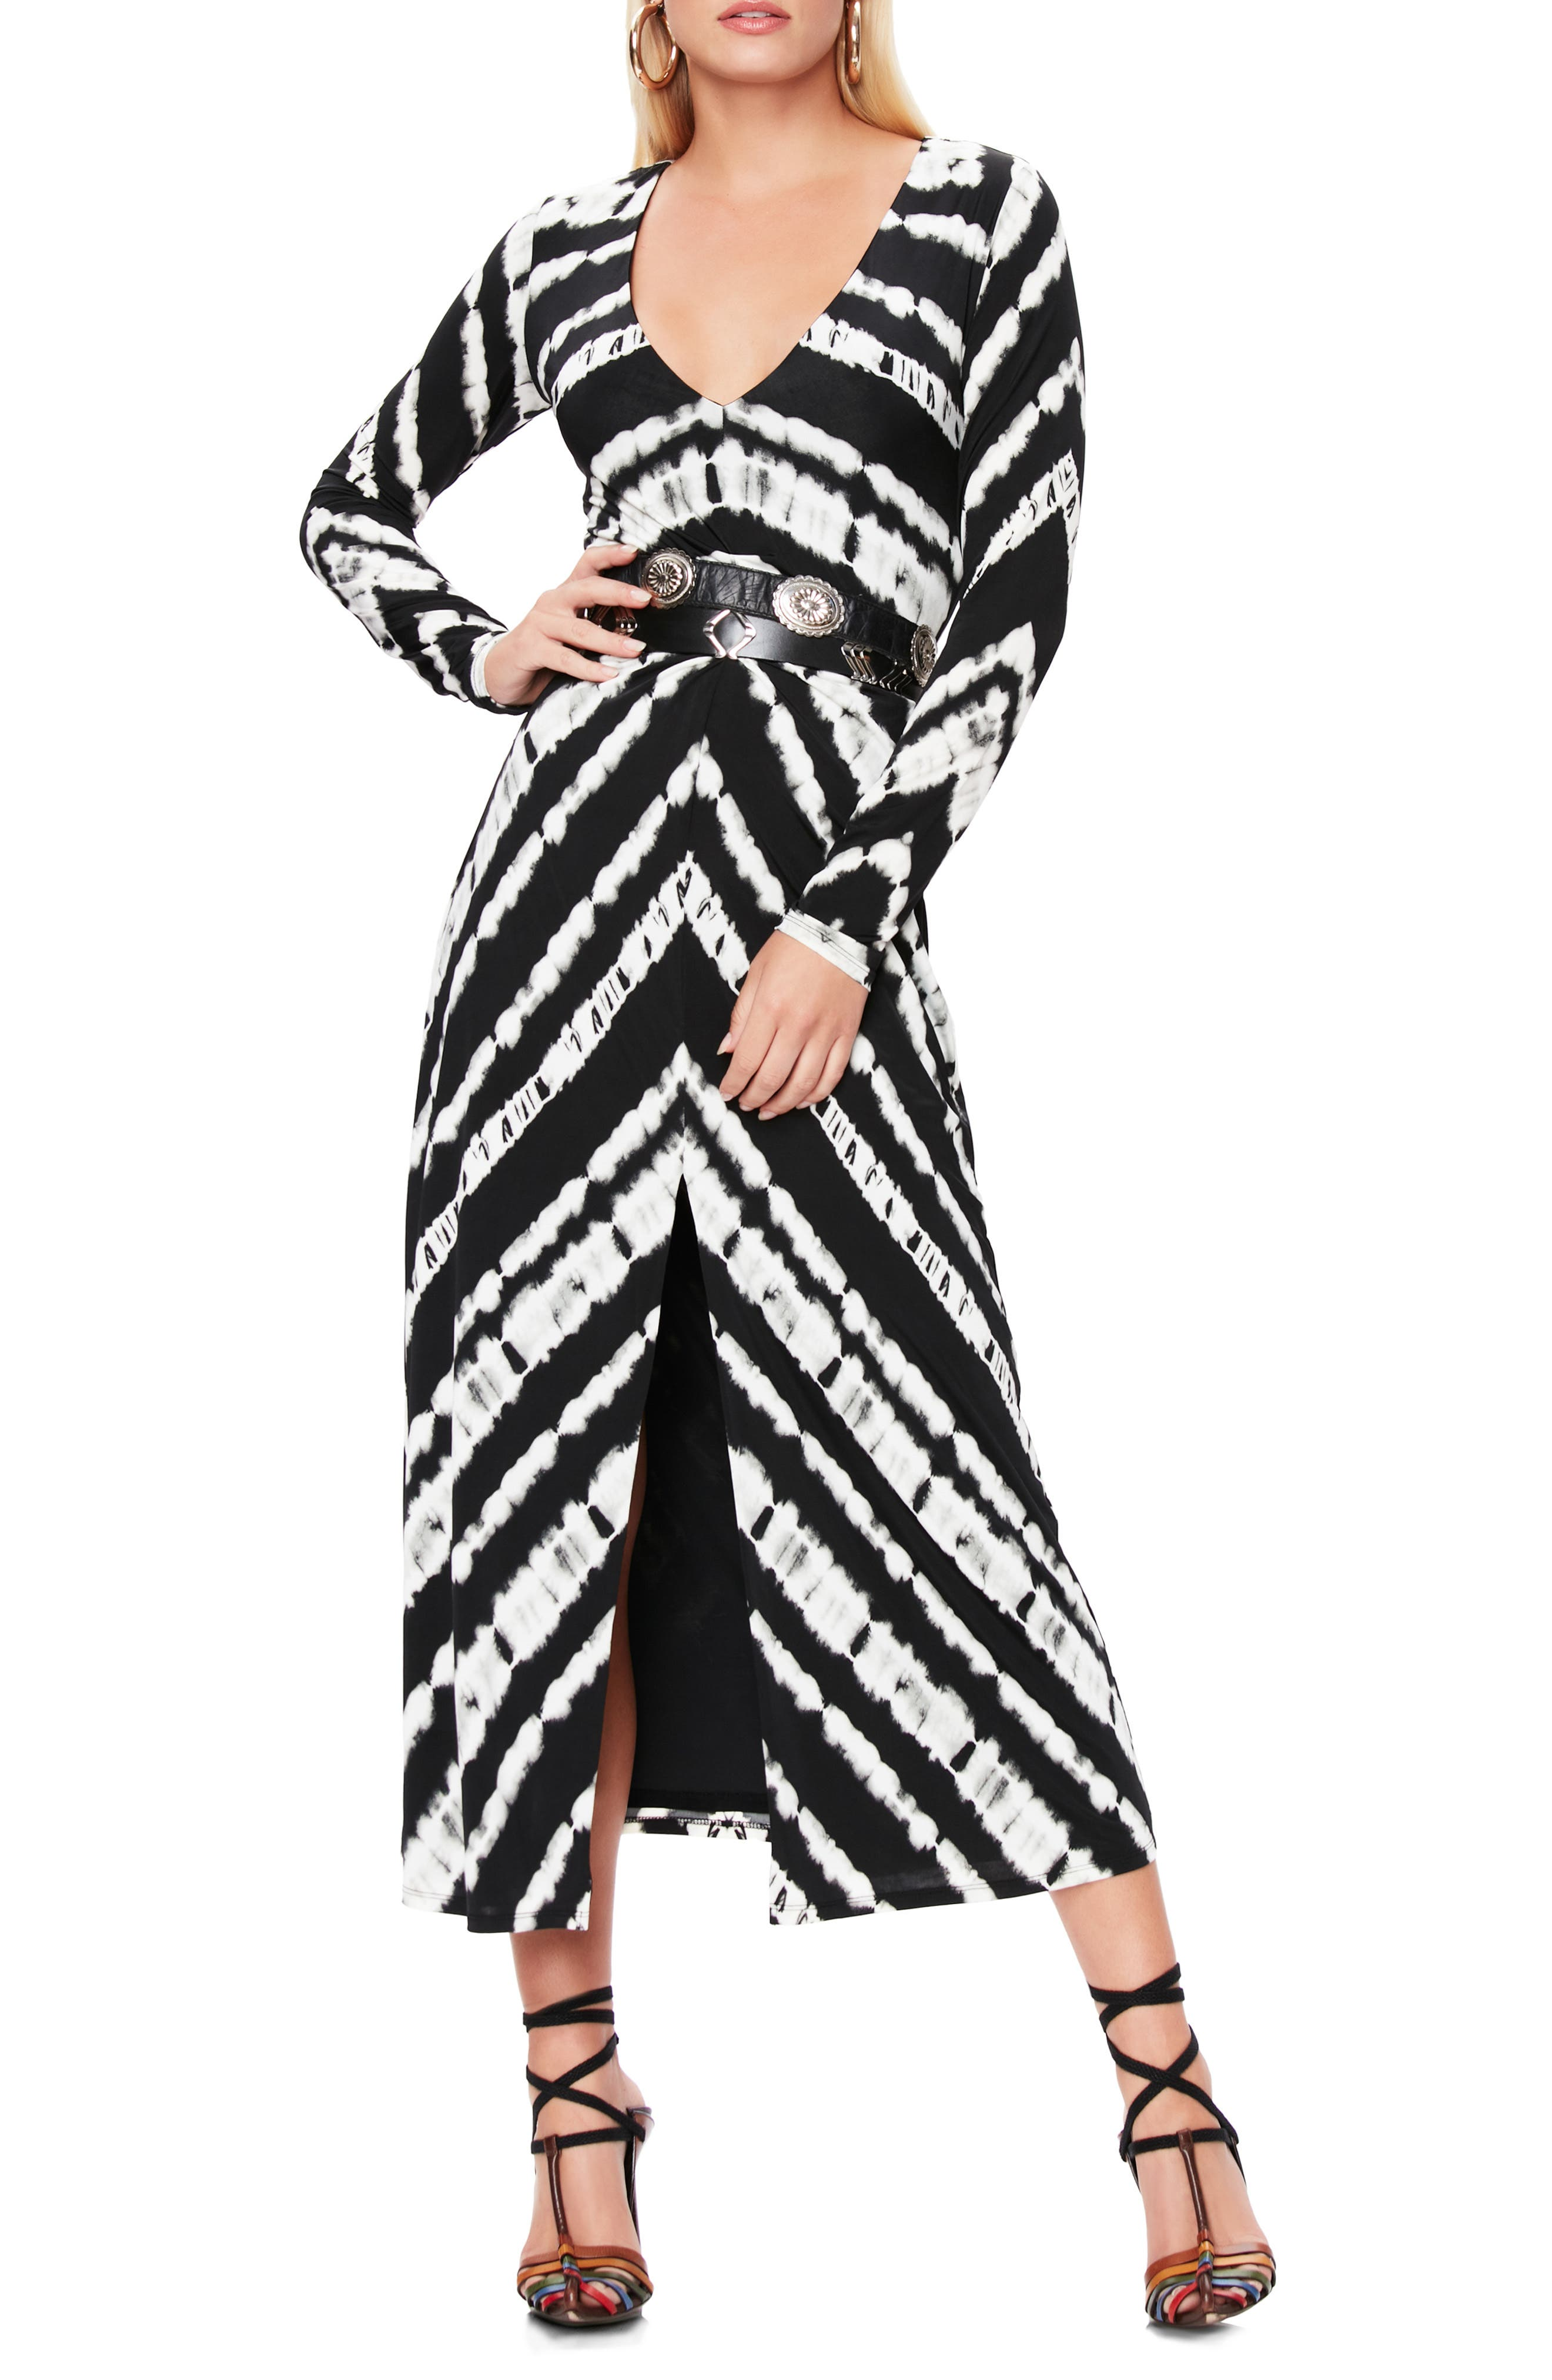 1920s Party Dresses, Great Gatsby Gowns, Prom Dresses Womens Afrm Zoey Animal Print Long Sleeve Dress Size Medium - Black $69.00 AT vintagedancer.com